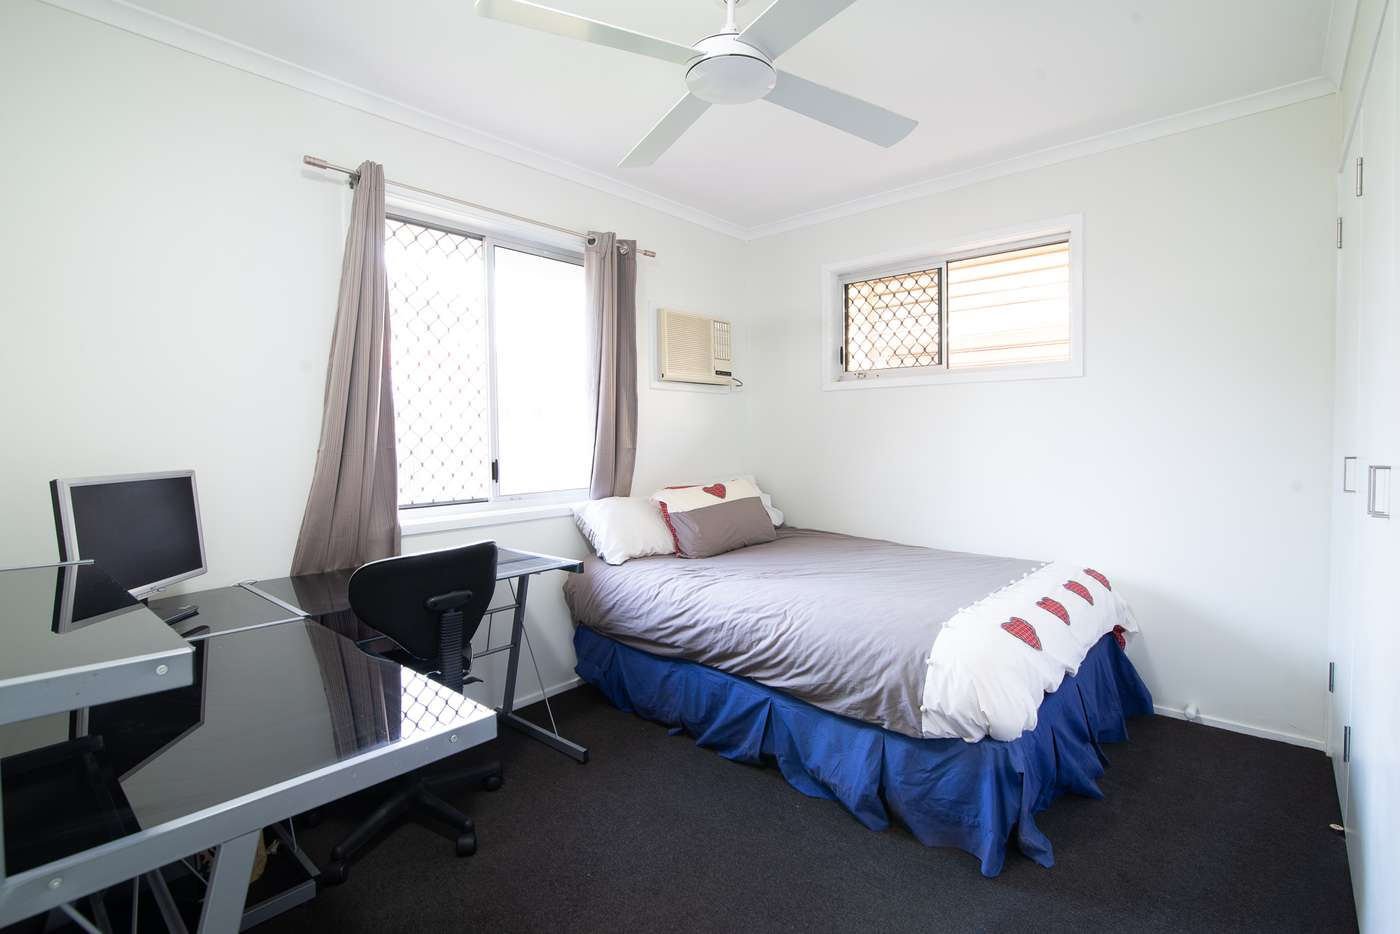 Sixth view of Homely house listing, 27 Jacaranda Crescent, Annandale QLD 4814